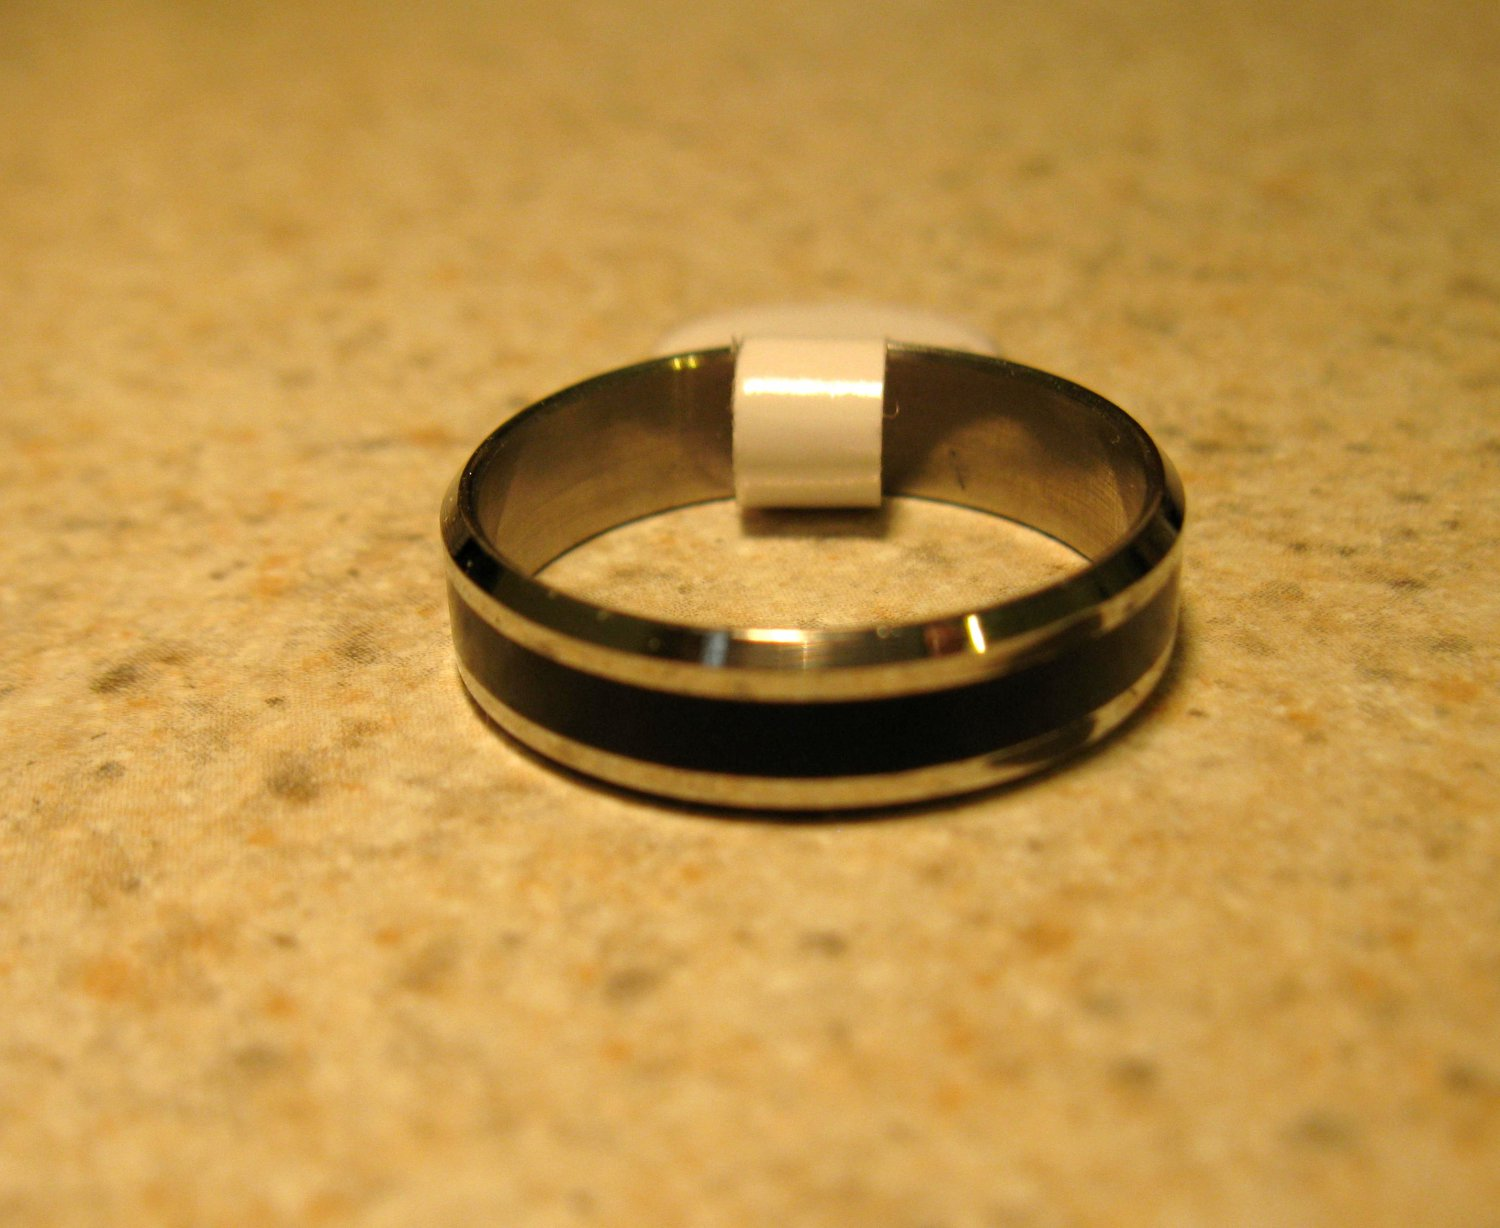 Silver with Black Wedding Band Rings Unisex Sizes 7 New #806